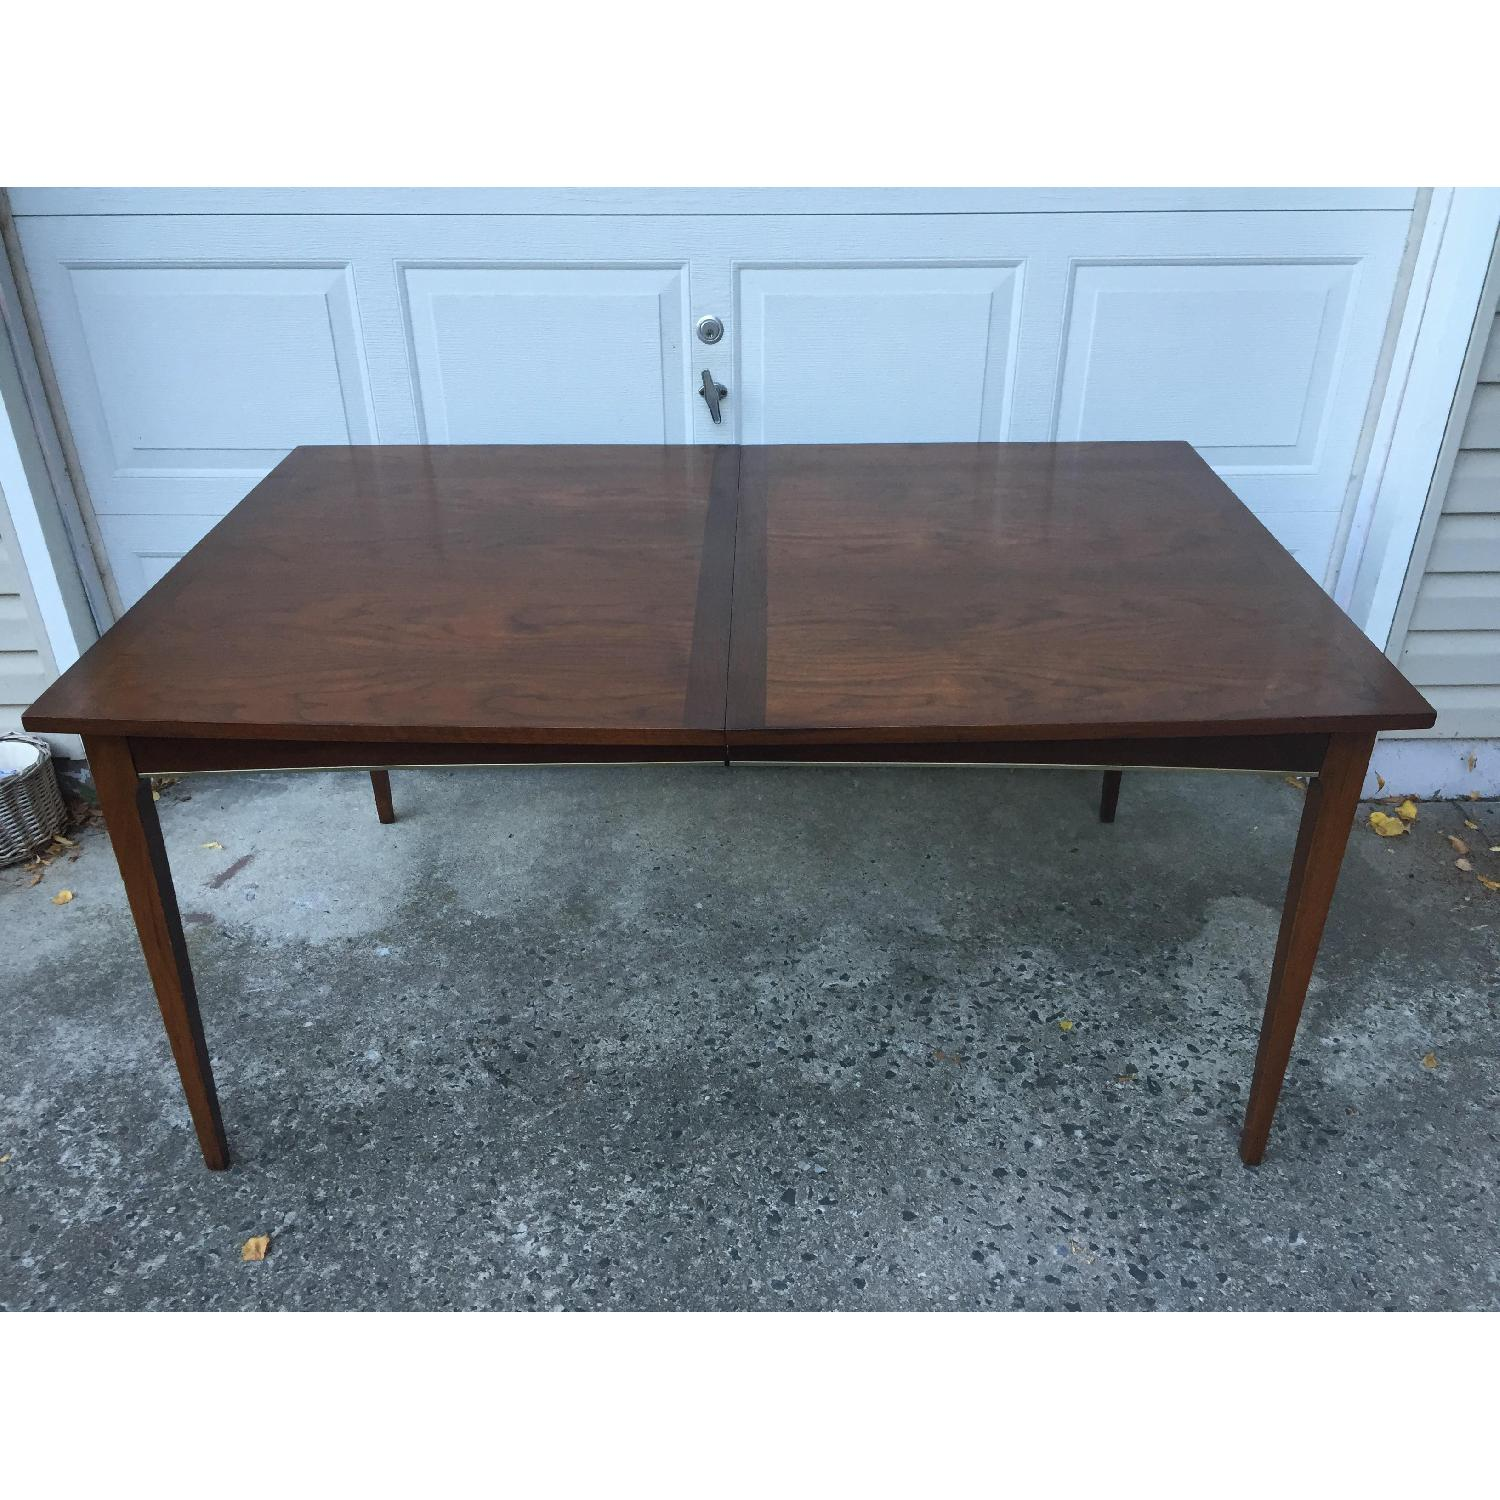 Mid Century Modern Walnut Dining Table with Brass Accents - image-6